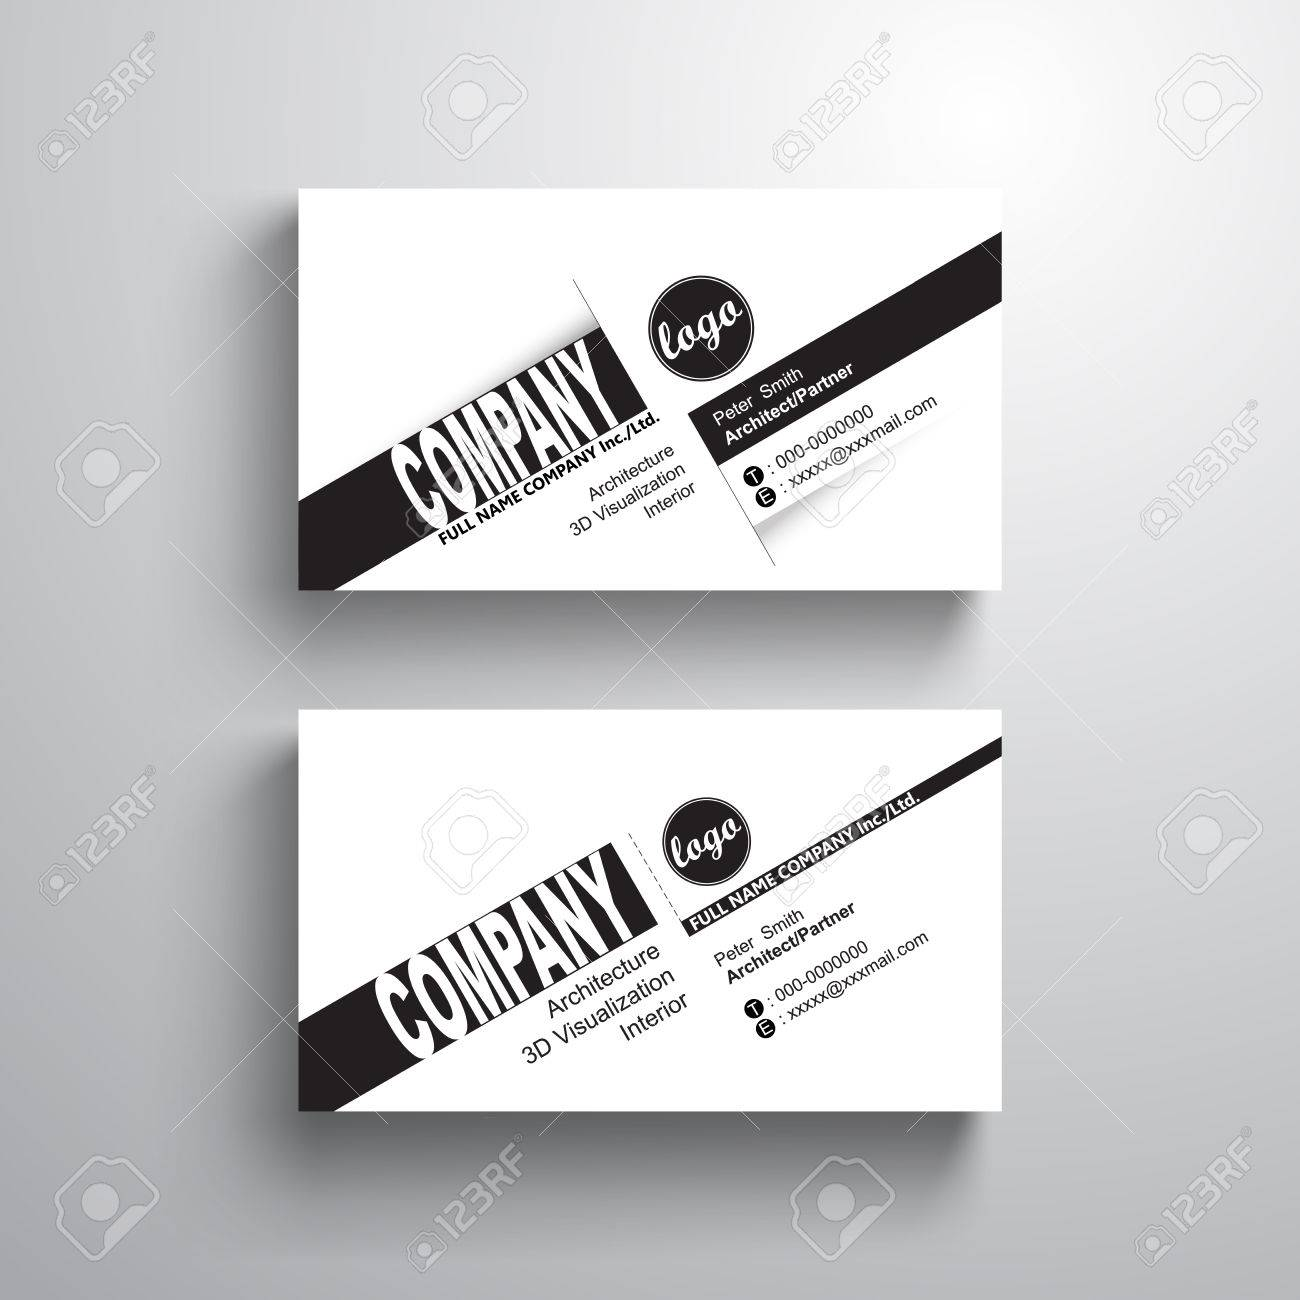 Black white design typography name card template business card black white design typography name card template business card minimalist style stock vector fbccfo Gallery